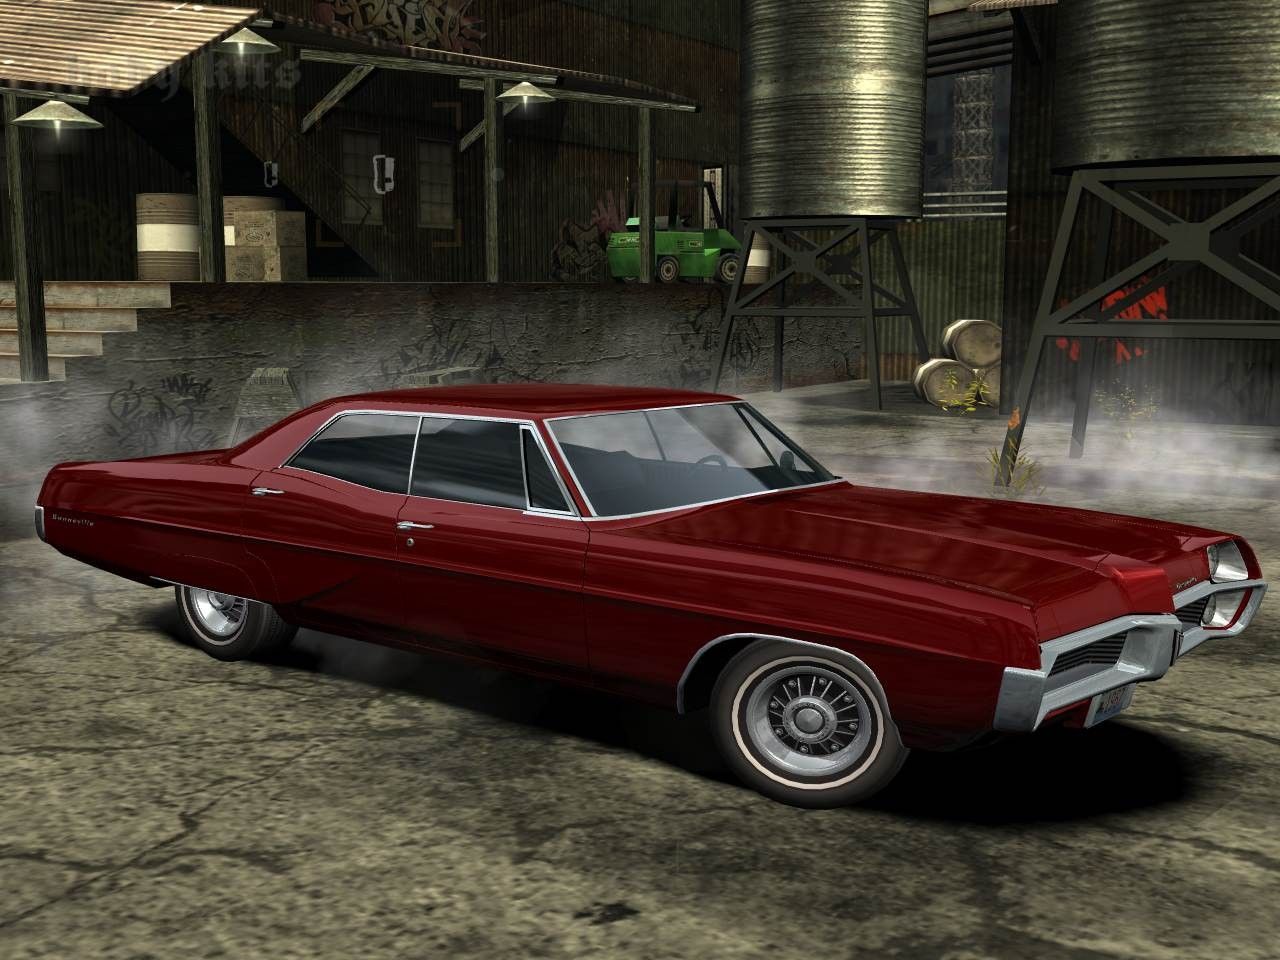 Pontiac Bonneville (1967) v.2 for Need For Speed Most Wanted